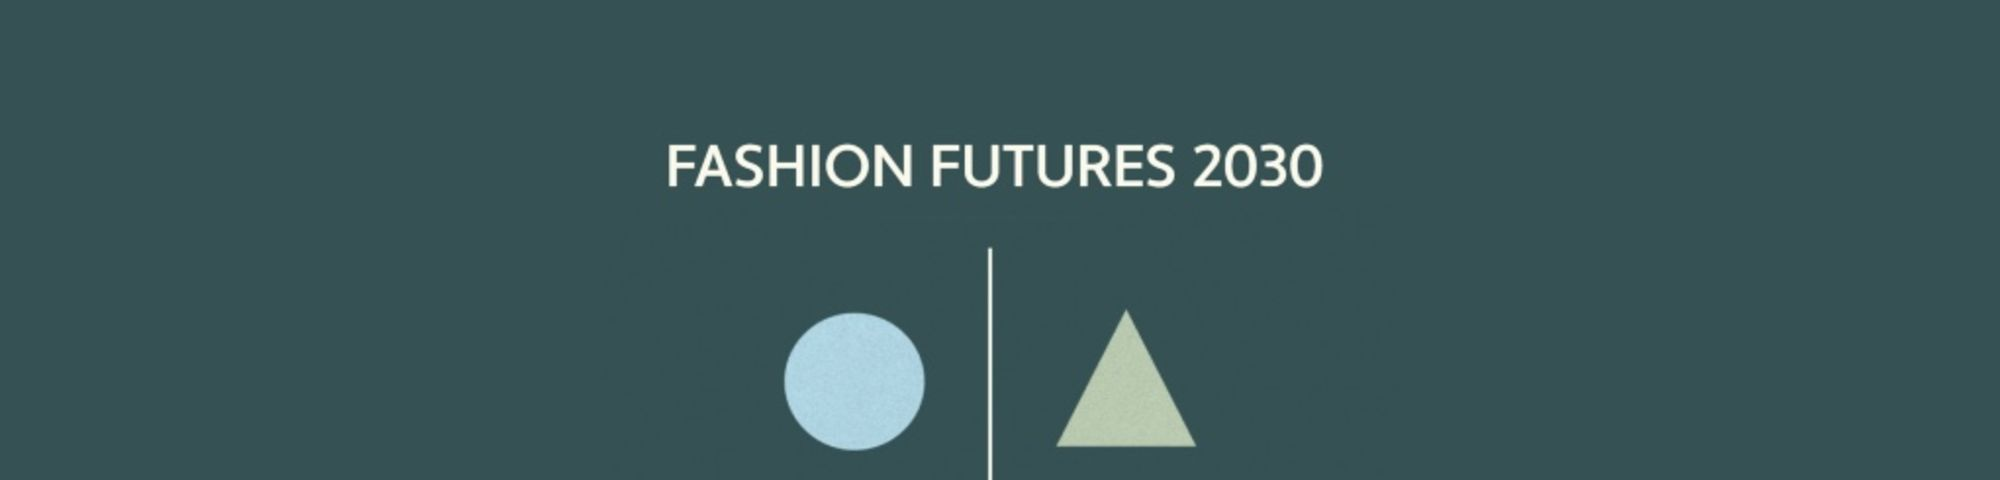 Fashion Futures 2030